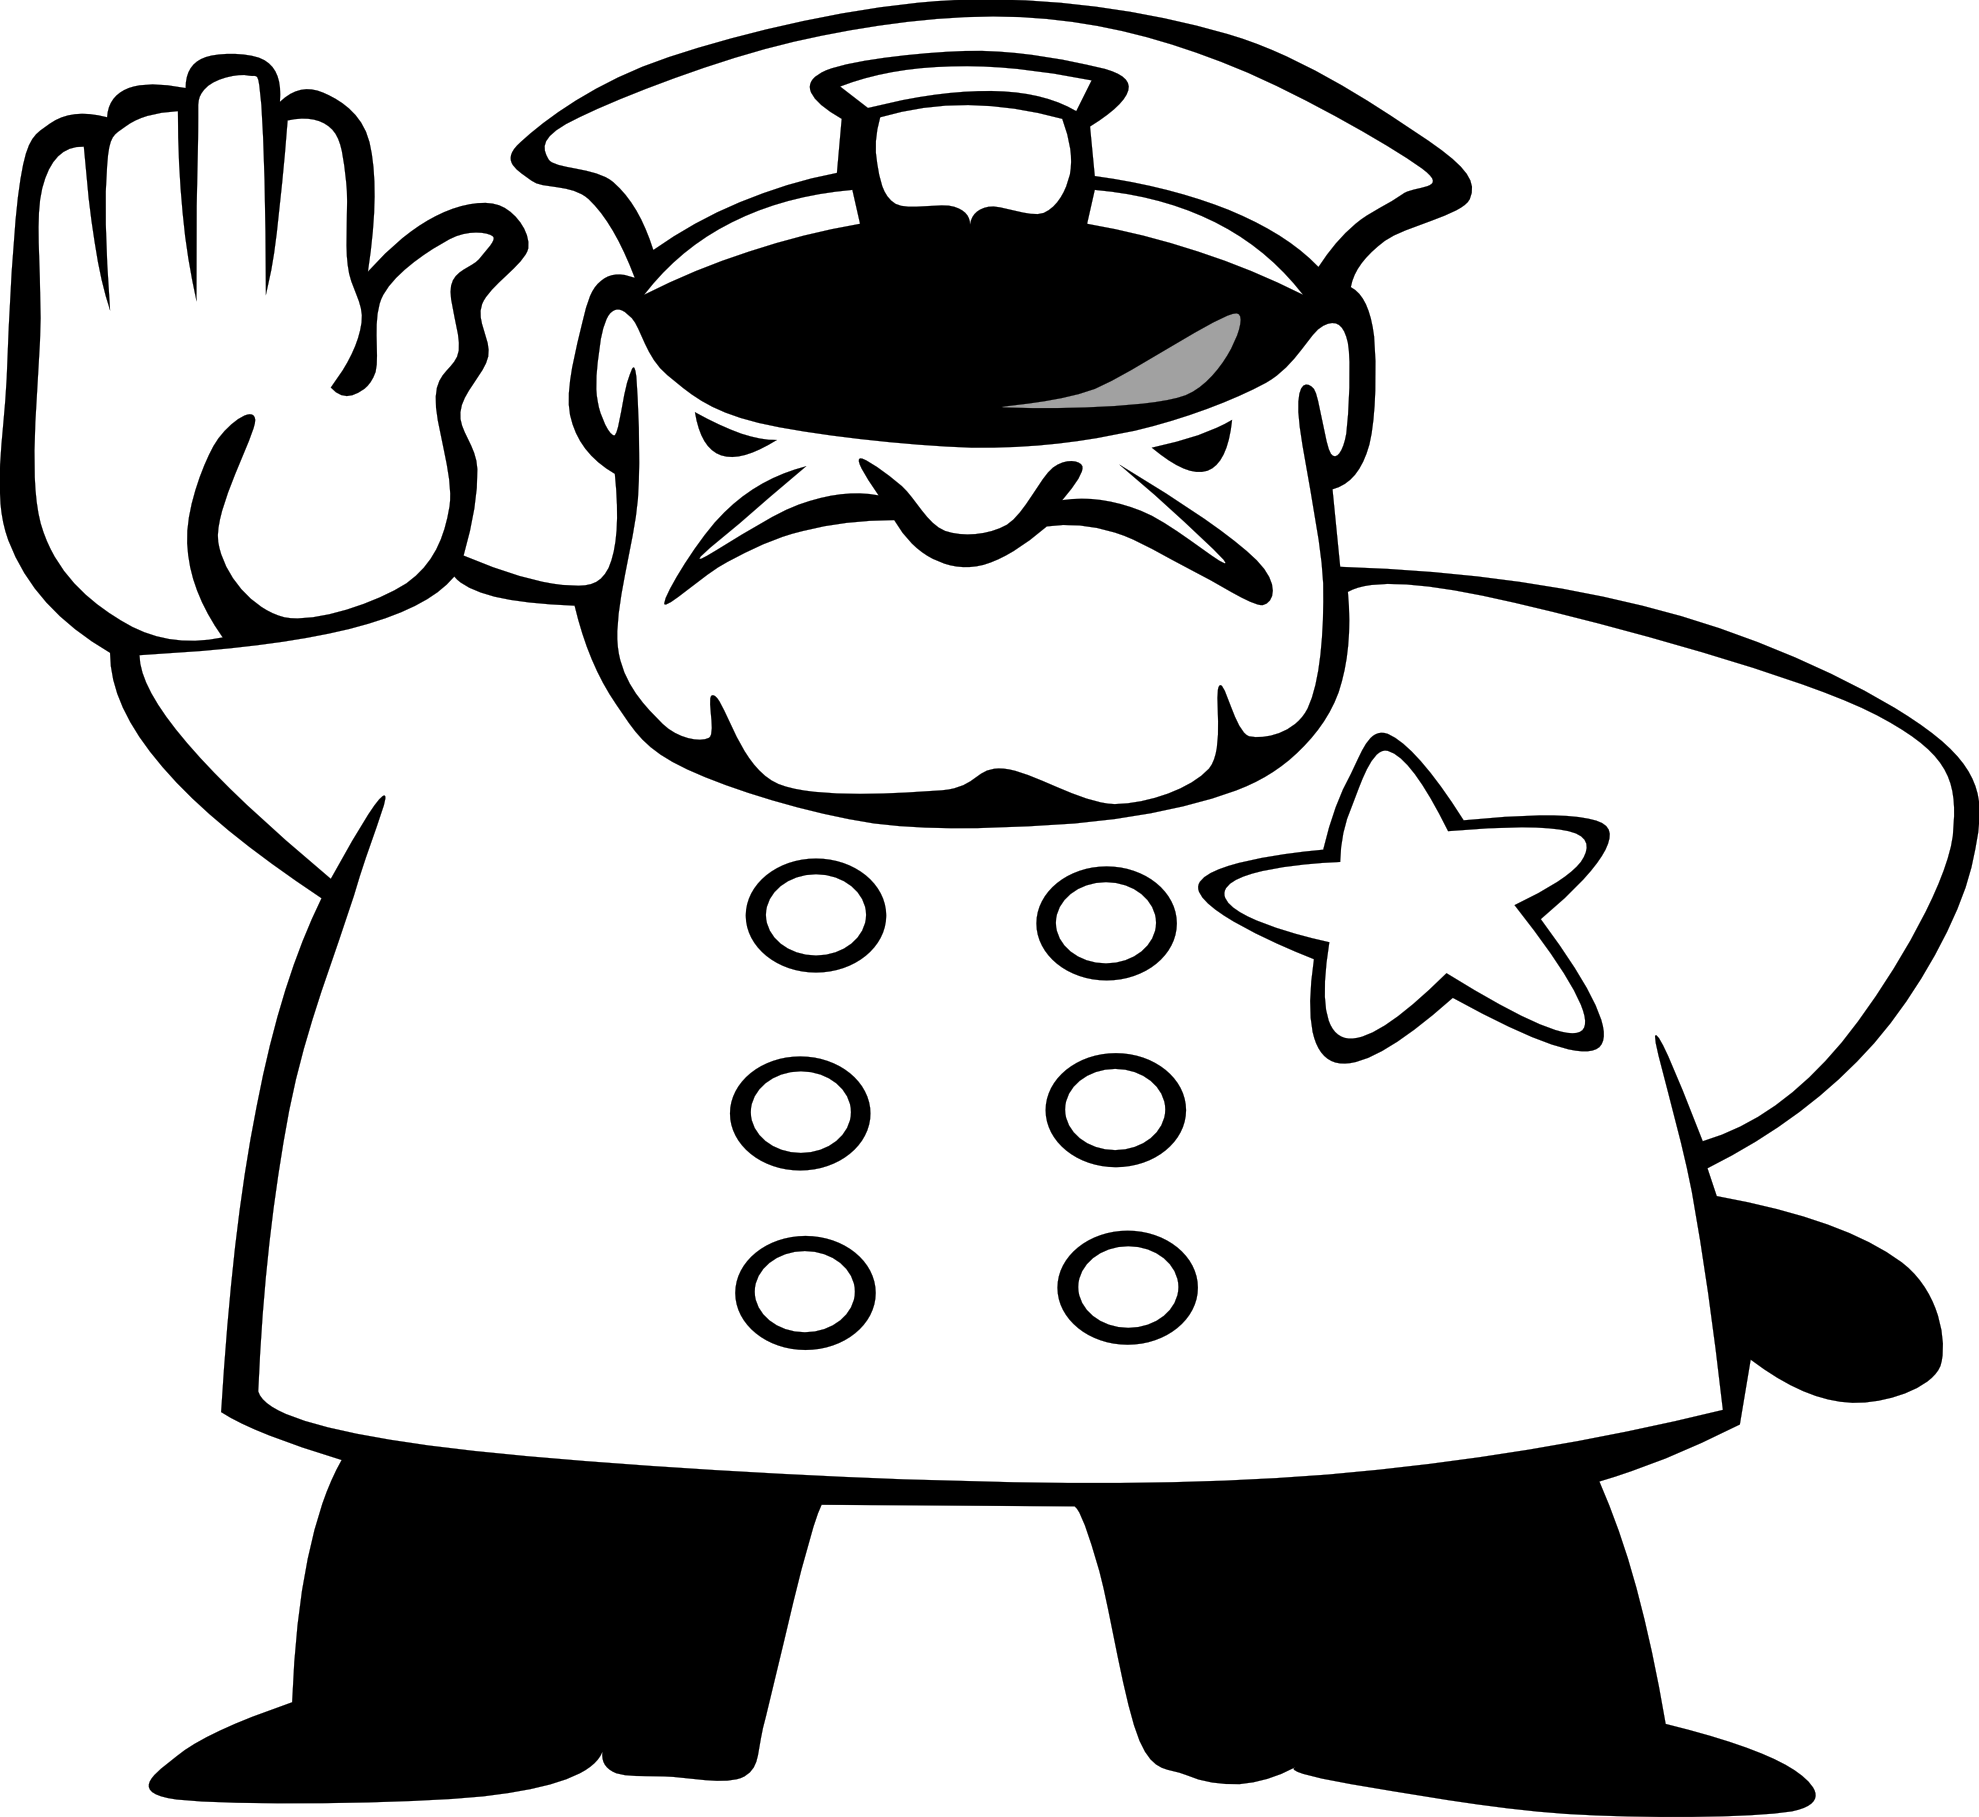 Pig clipart cop. Amazing of black and